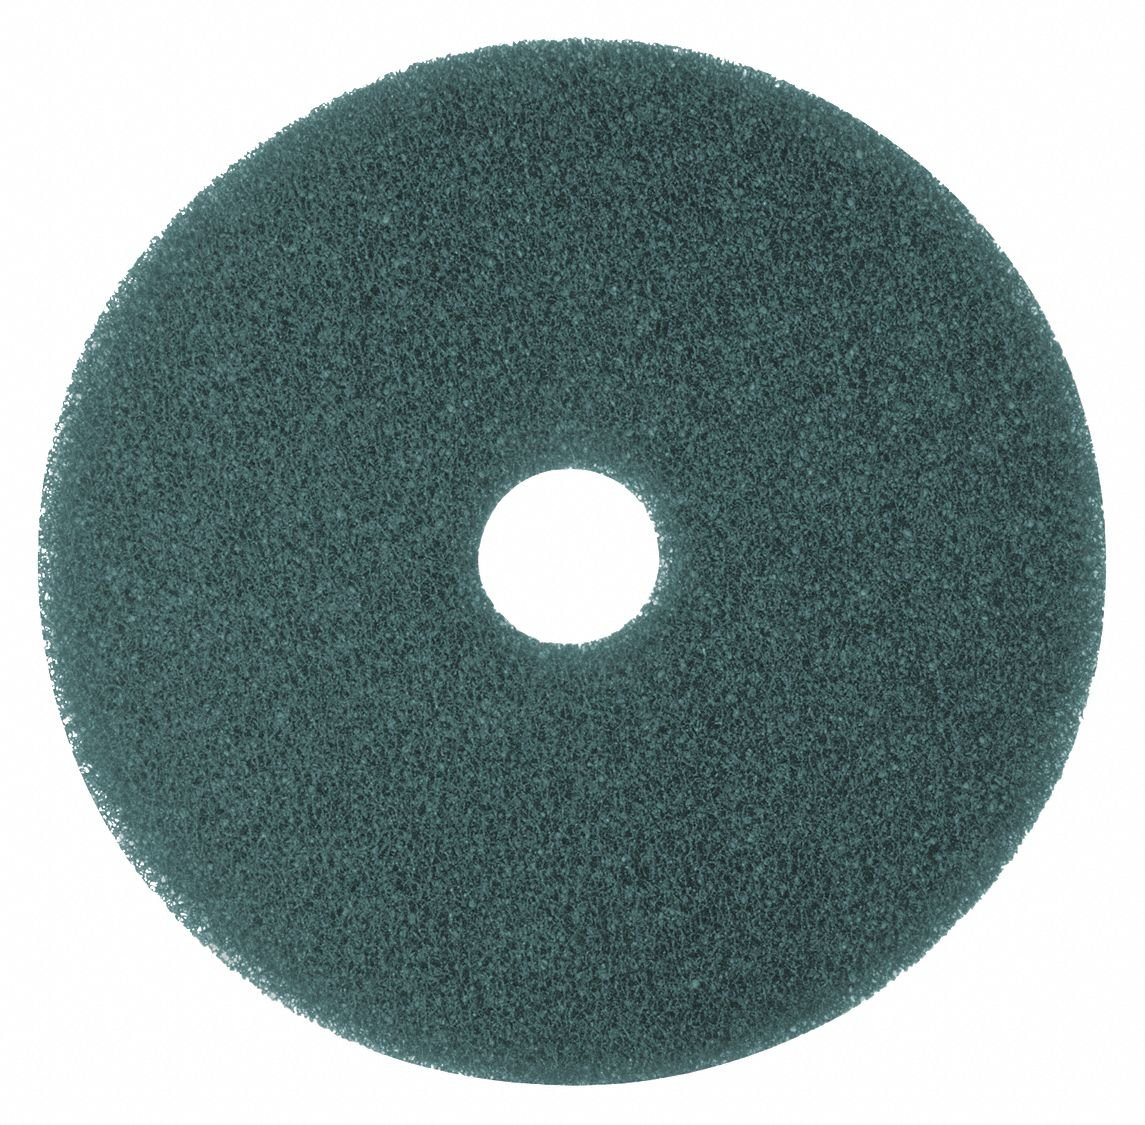 Cleaning Pad, Blue, Size 16'', Round, PK5 by Tough Guy (Image #1)